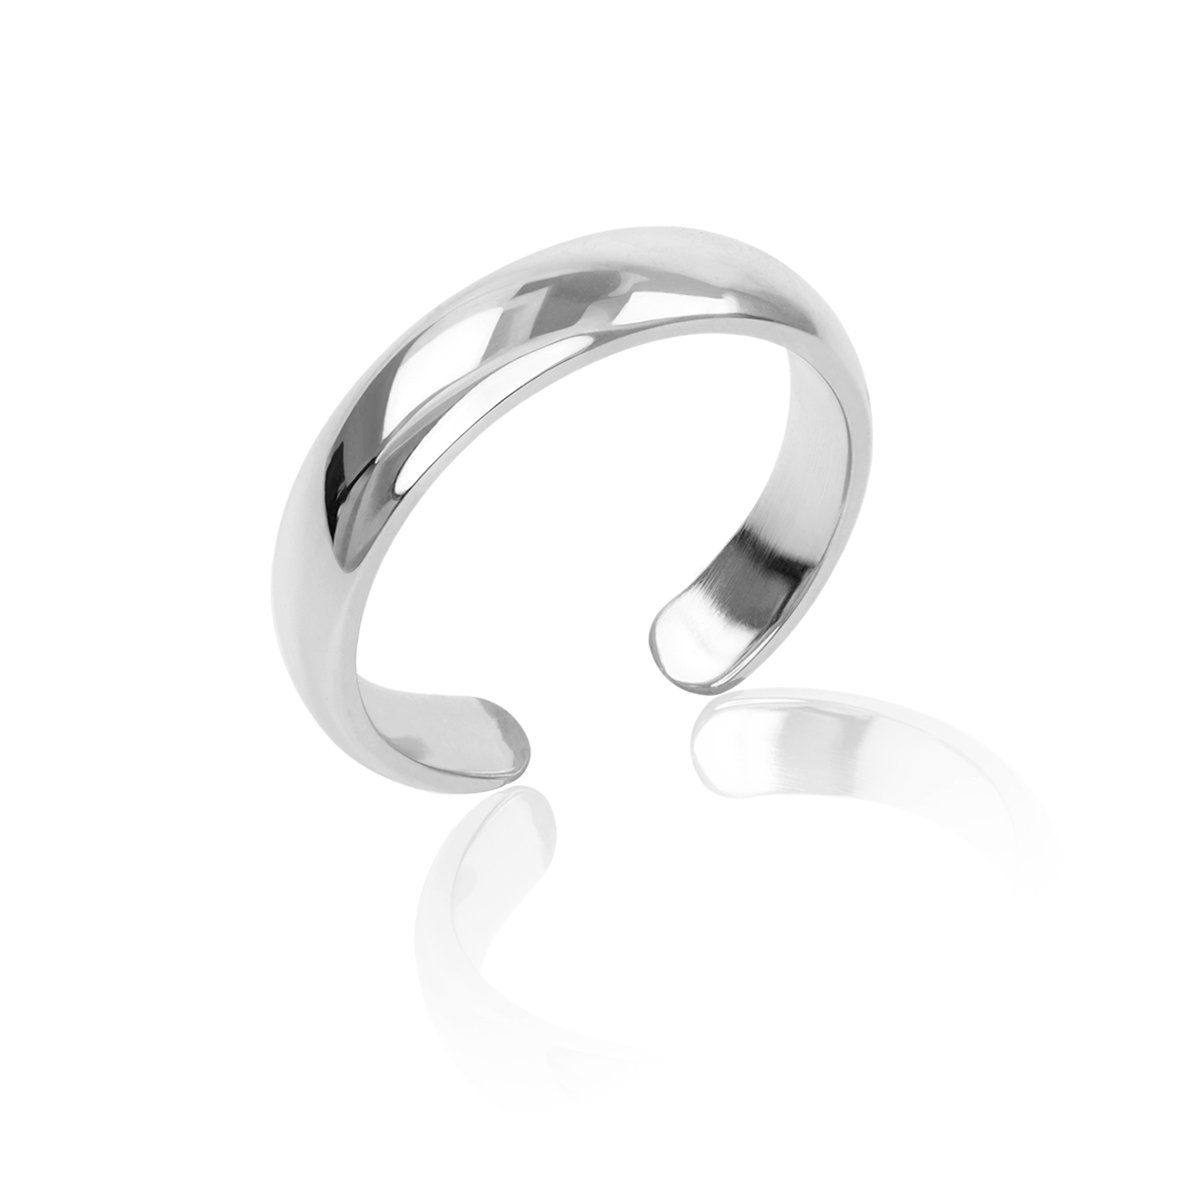 Honolulu Jewelry Company Sterling Silver Band Toe Ring (4mm)